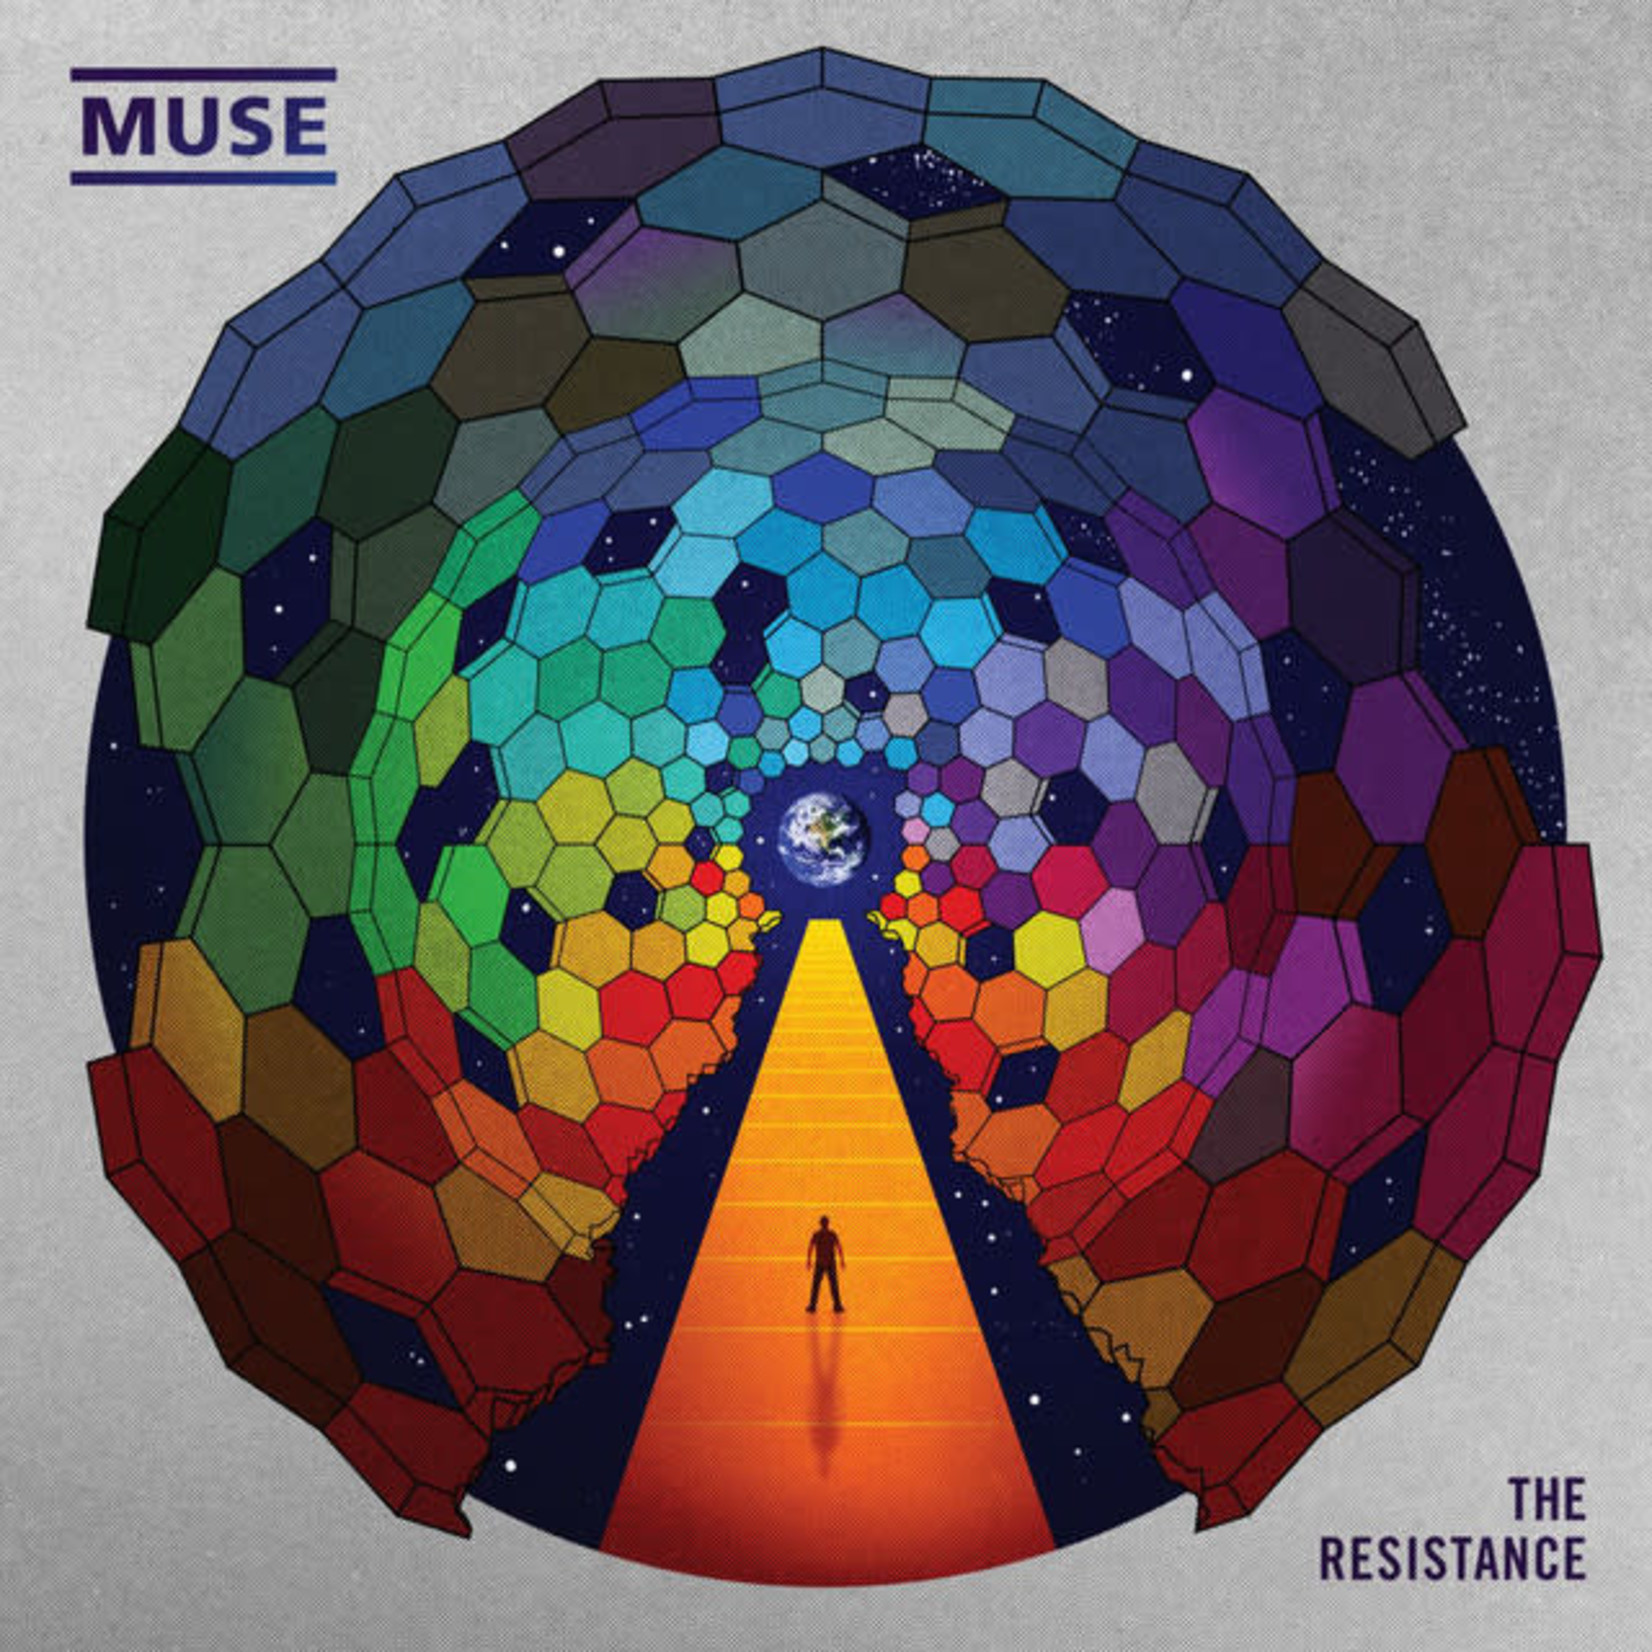 Vinyl Muse - The Resistance